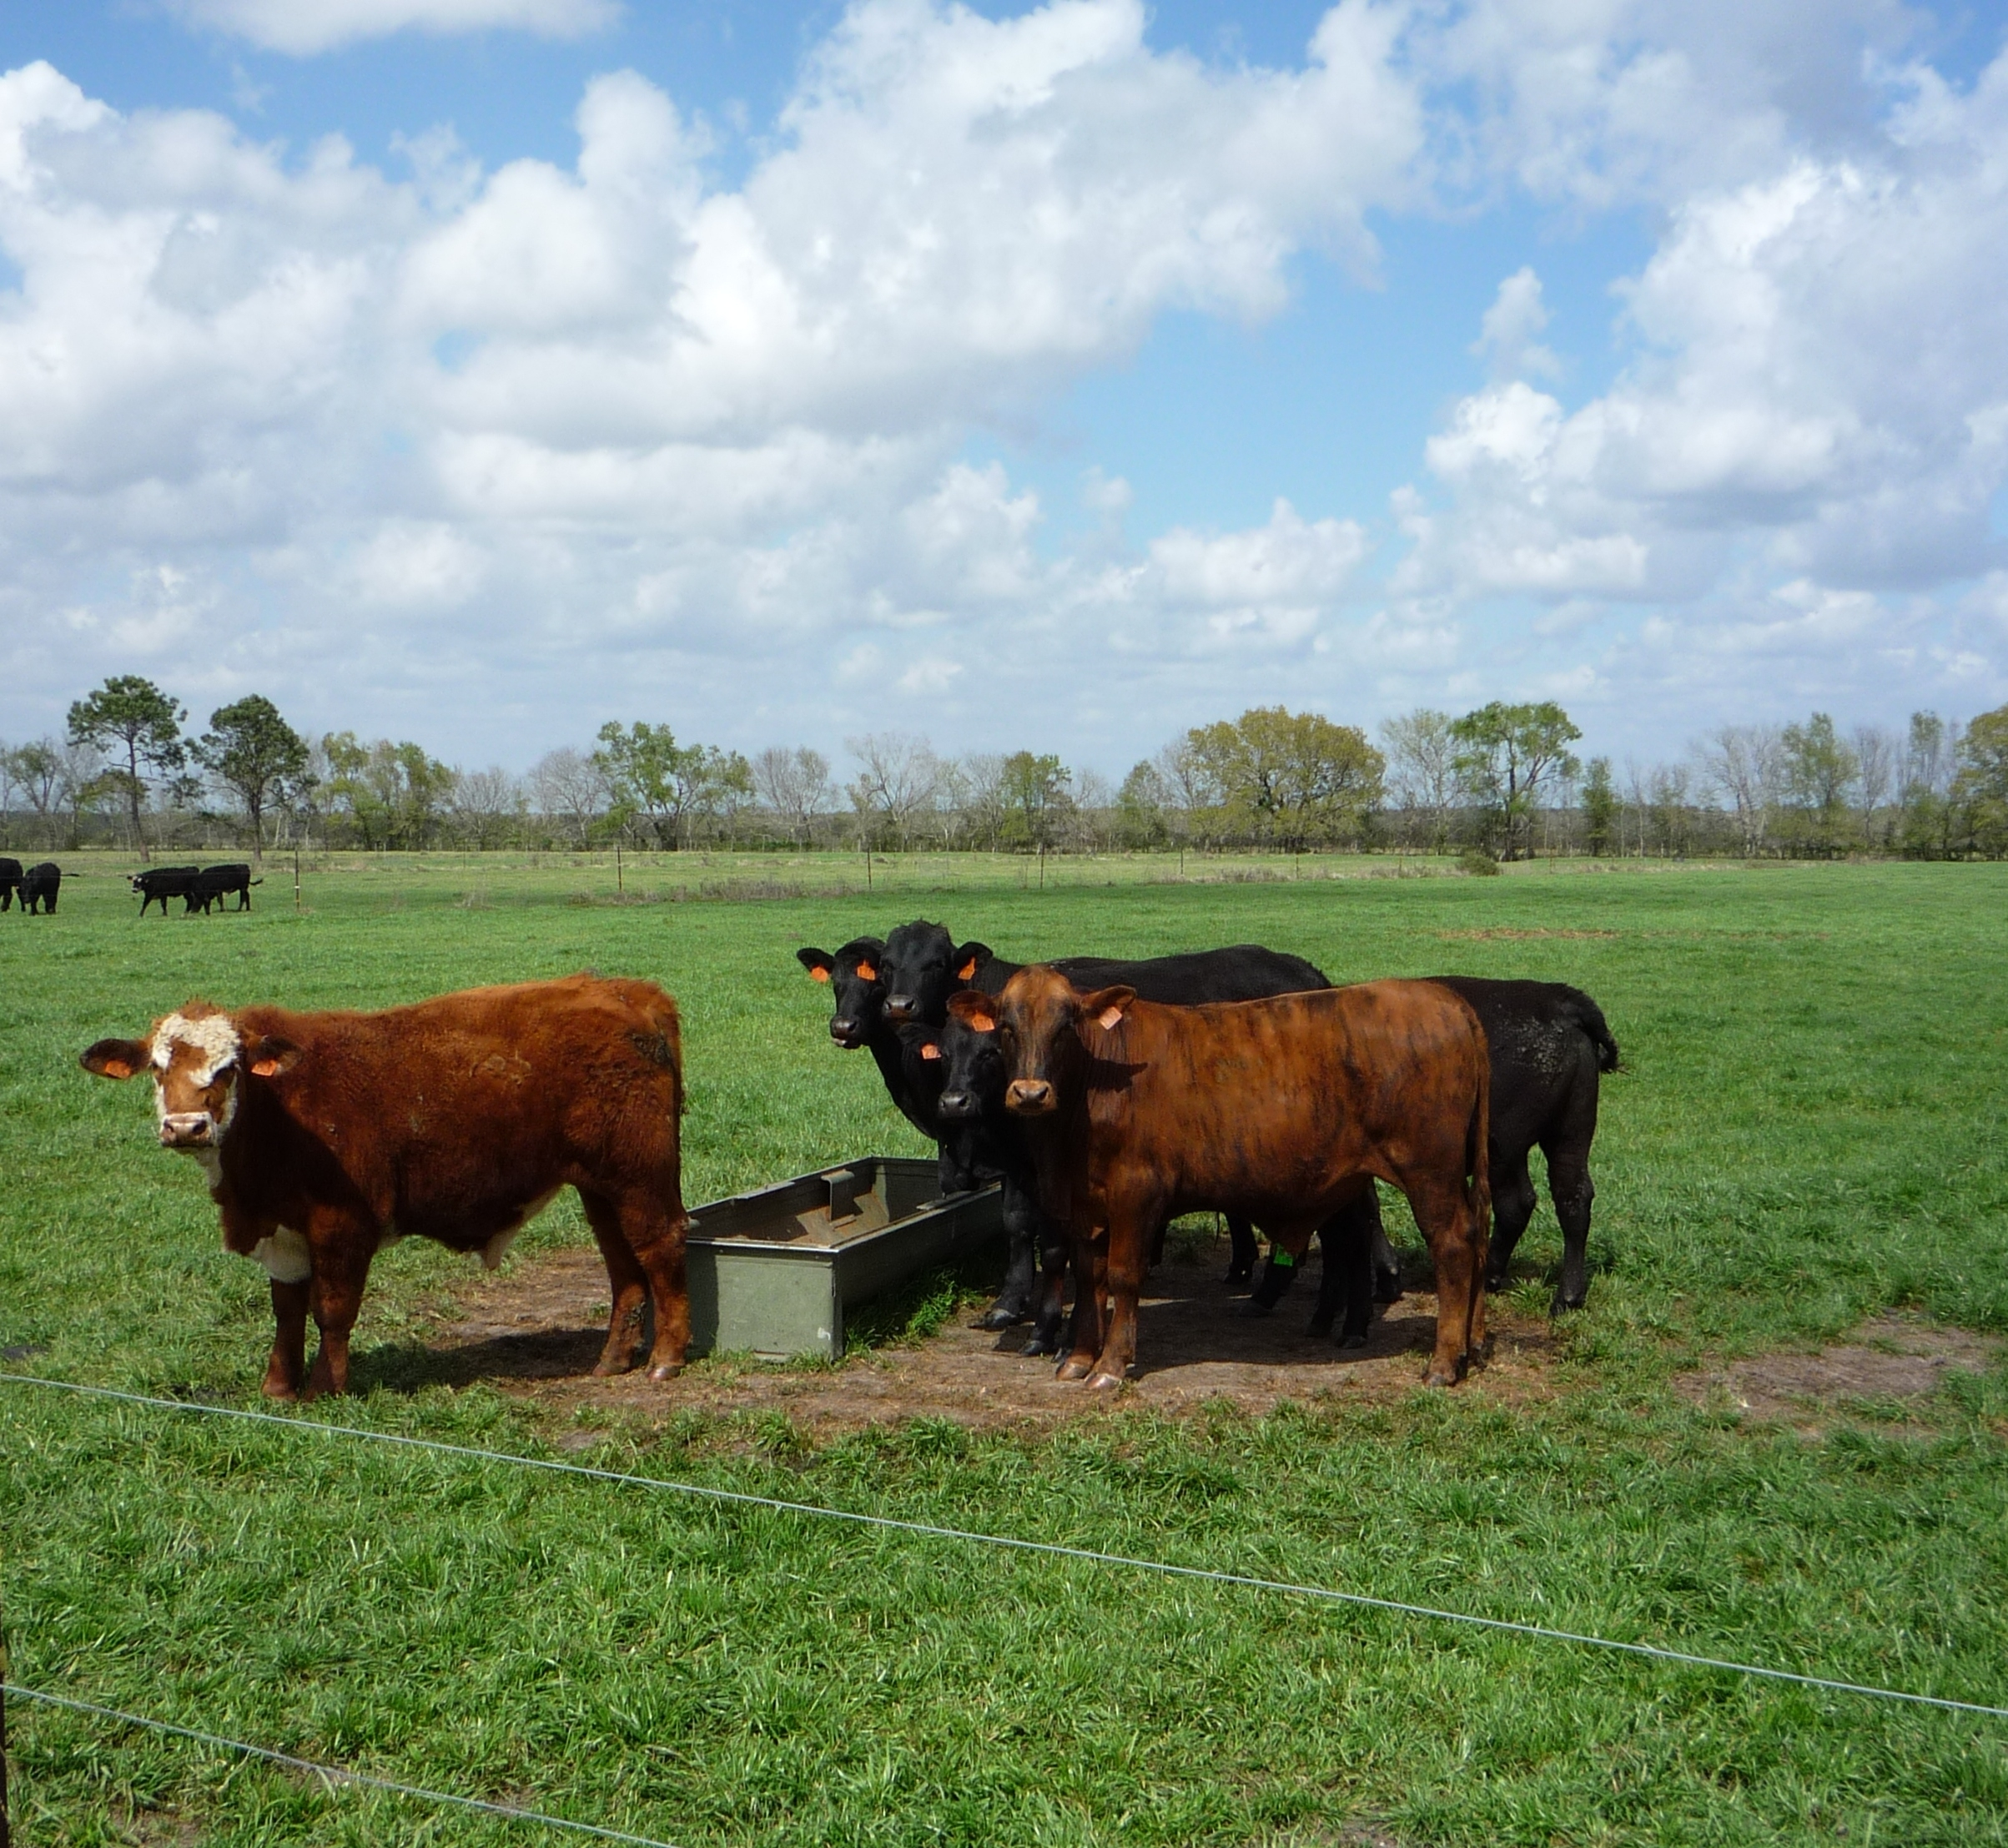 Image of cattle in pasture.